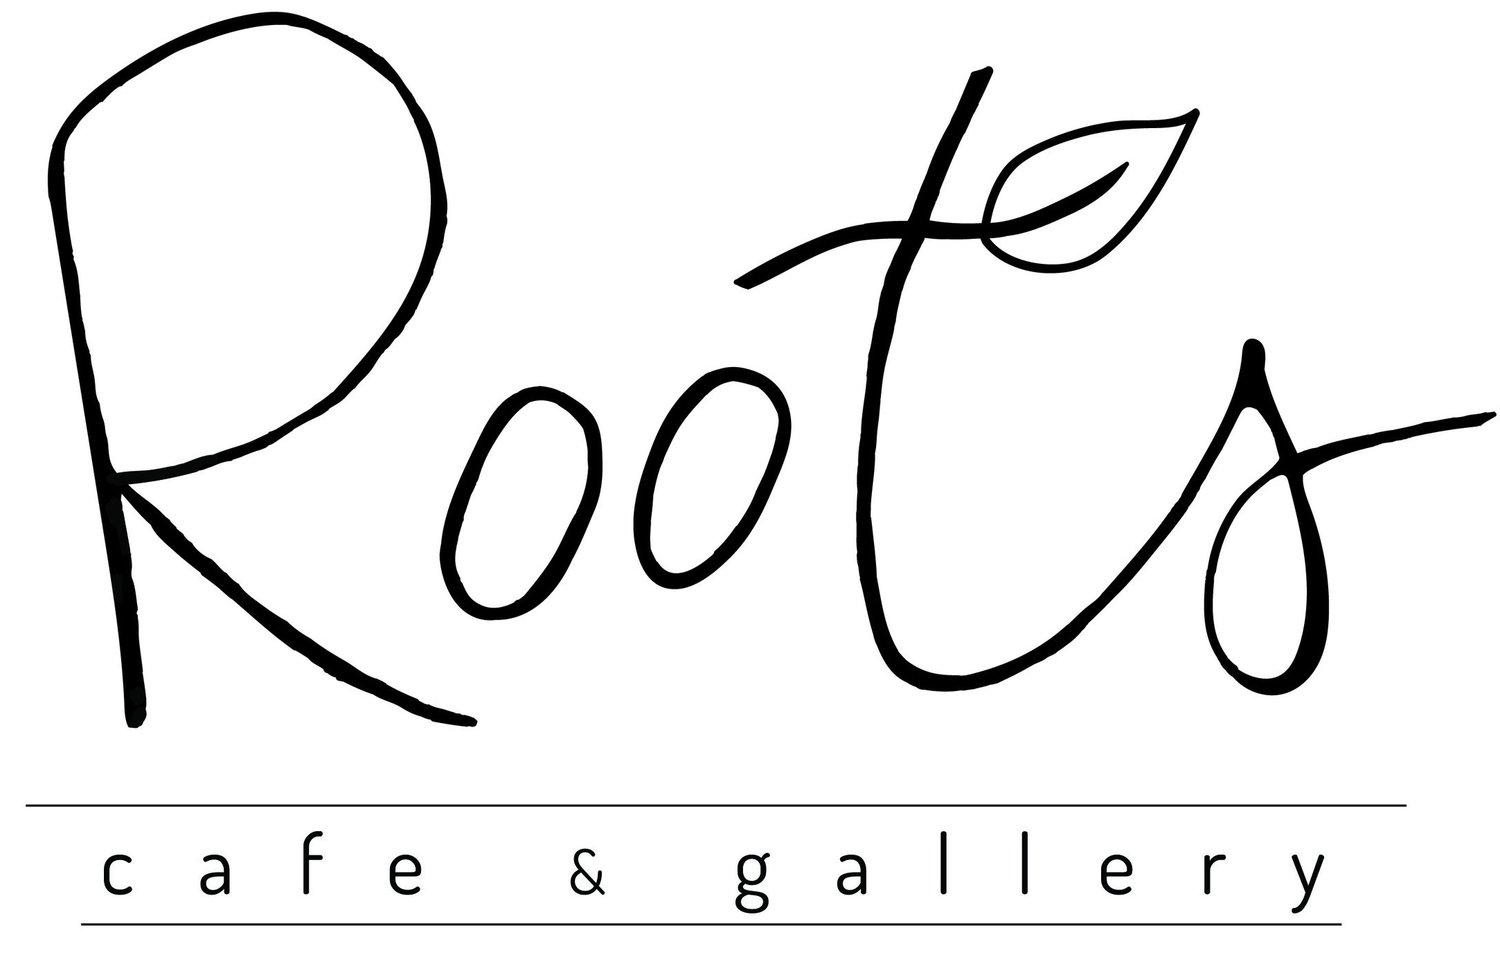 Roots cafe & gallery